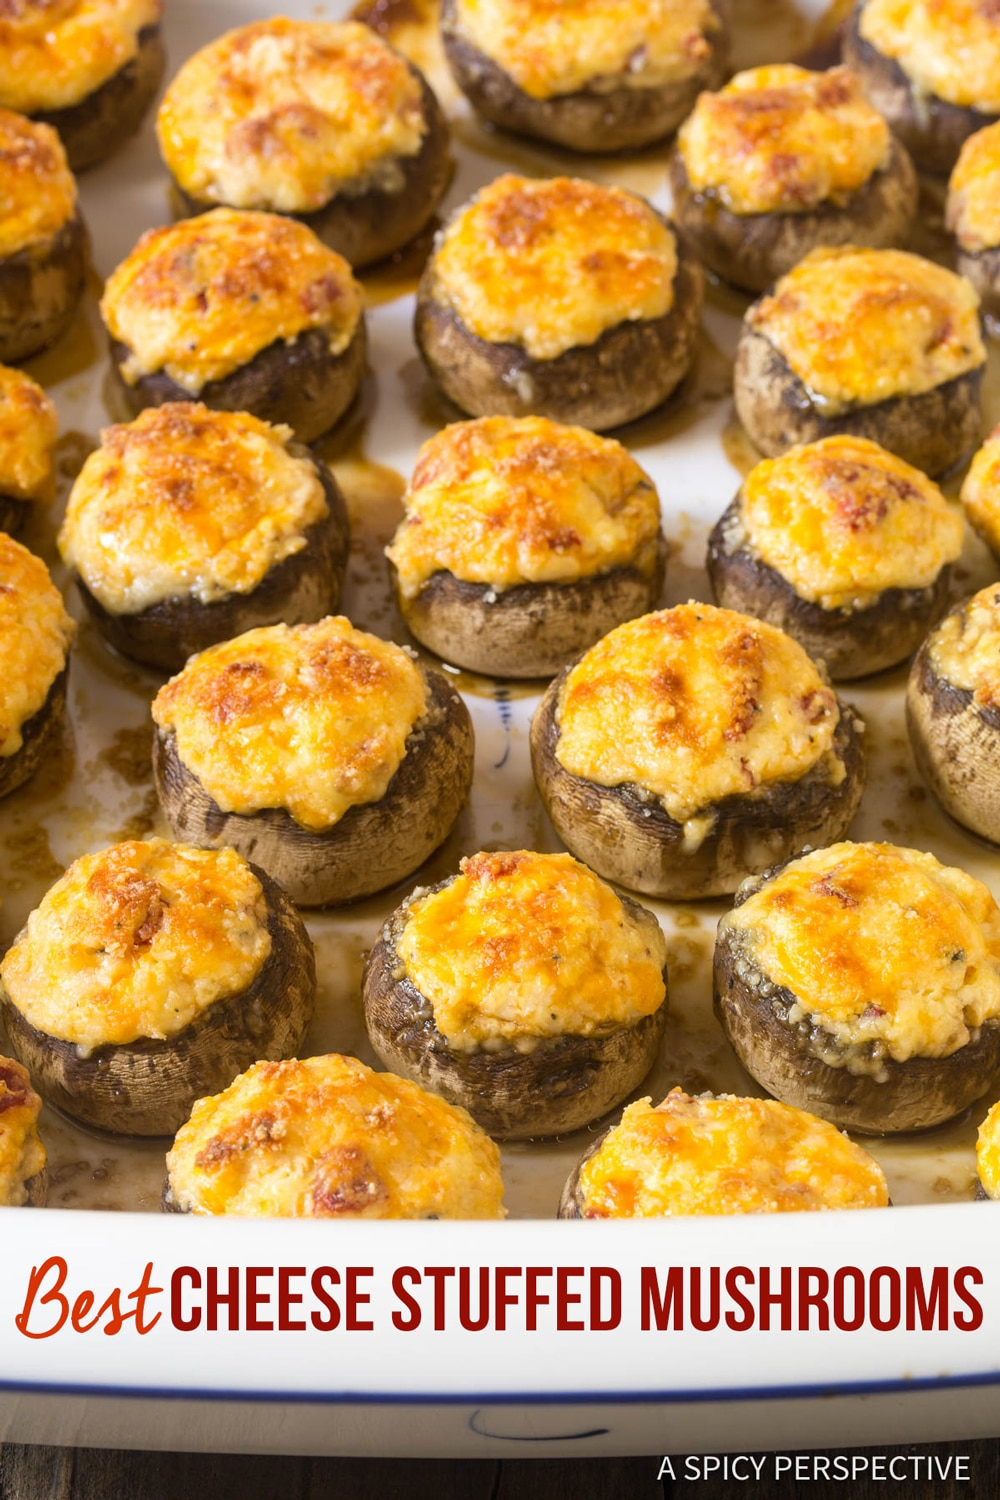 The Best Cheese Stuffed Mushrooms Recipe #ASpicyPerpective